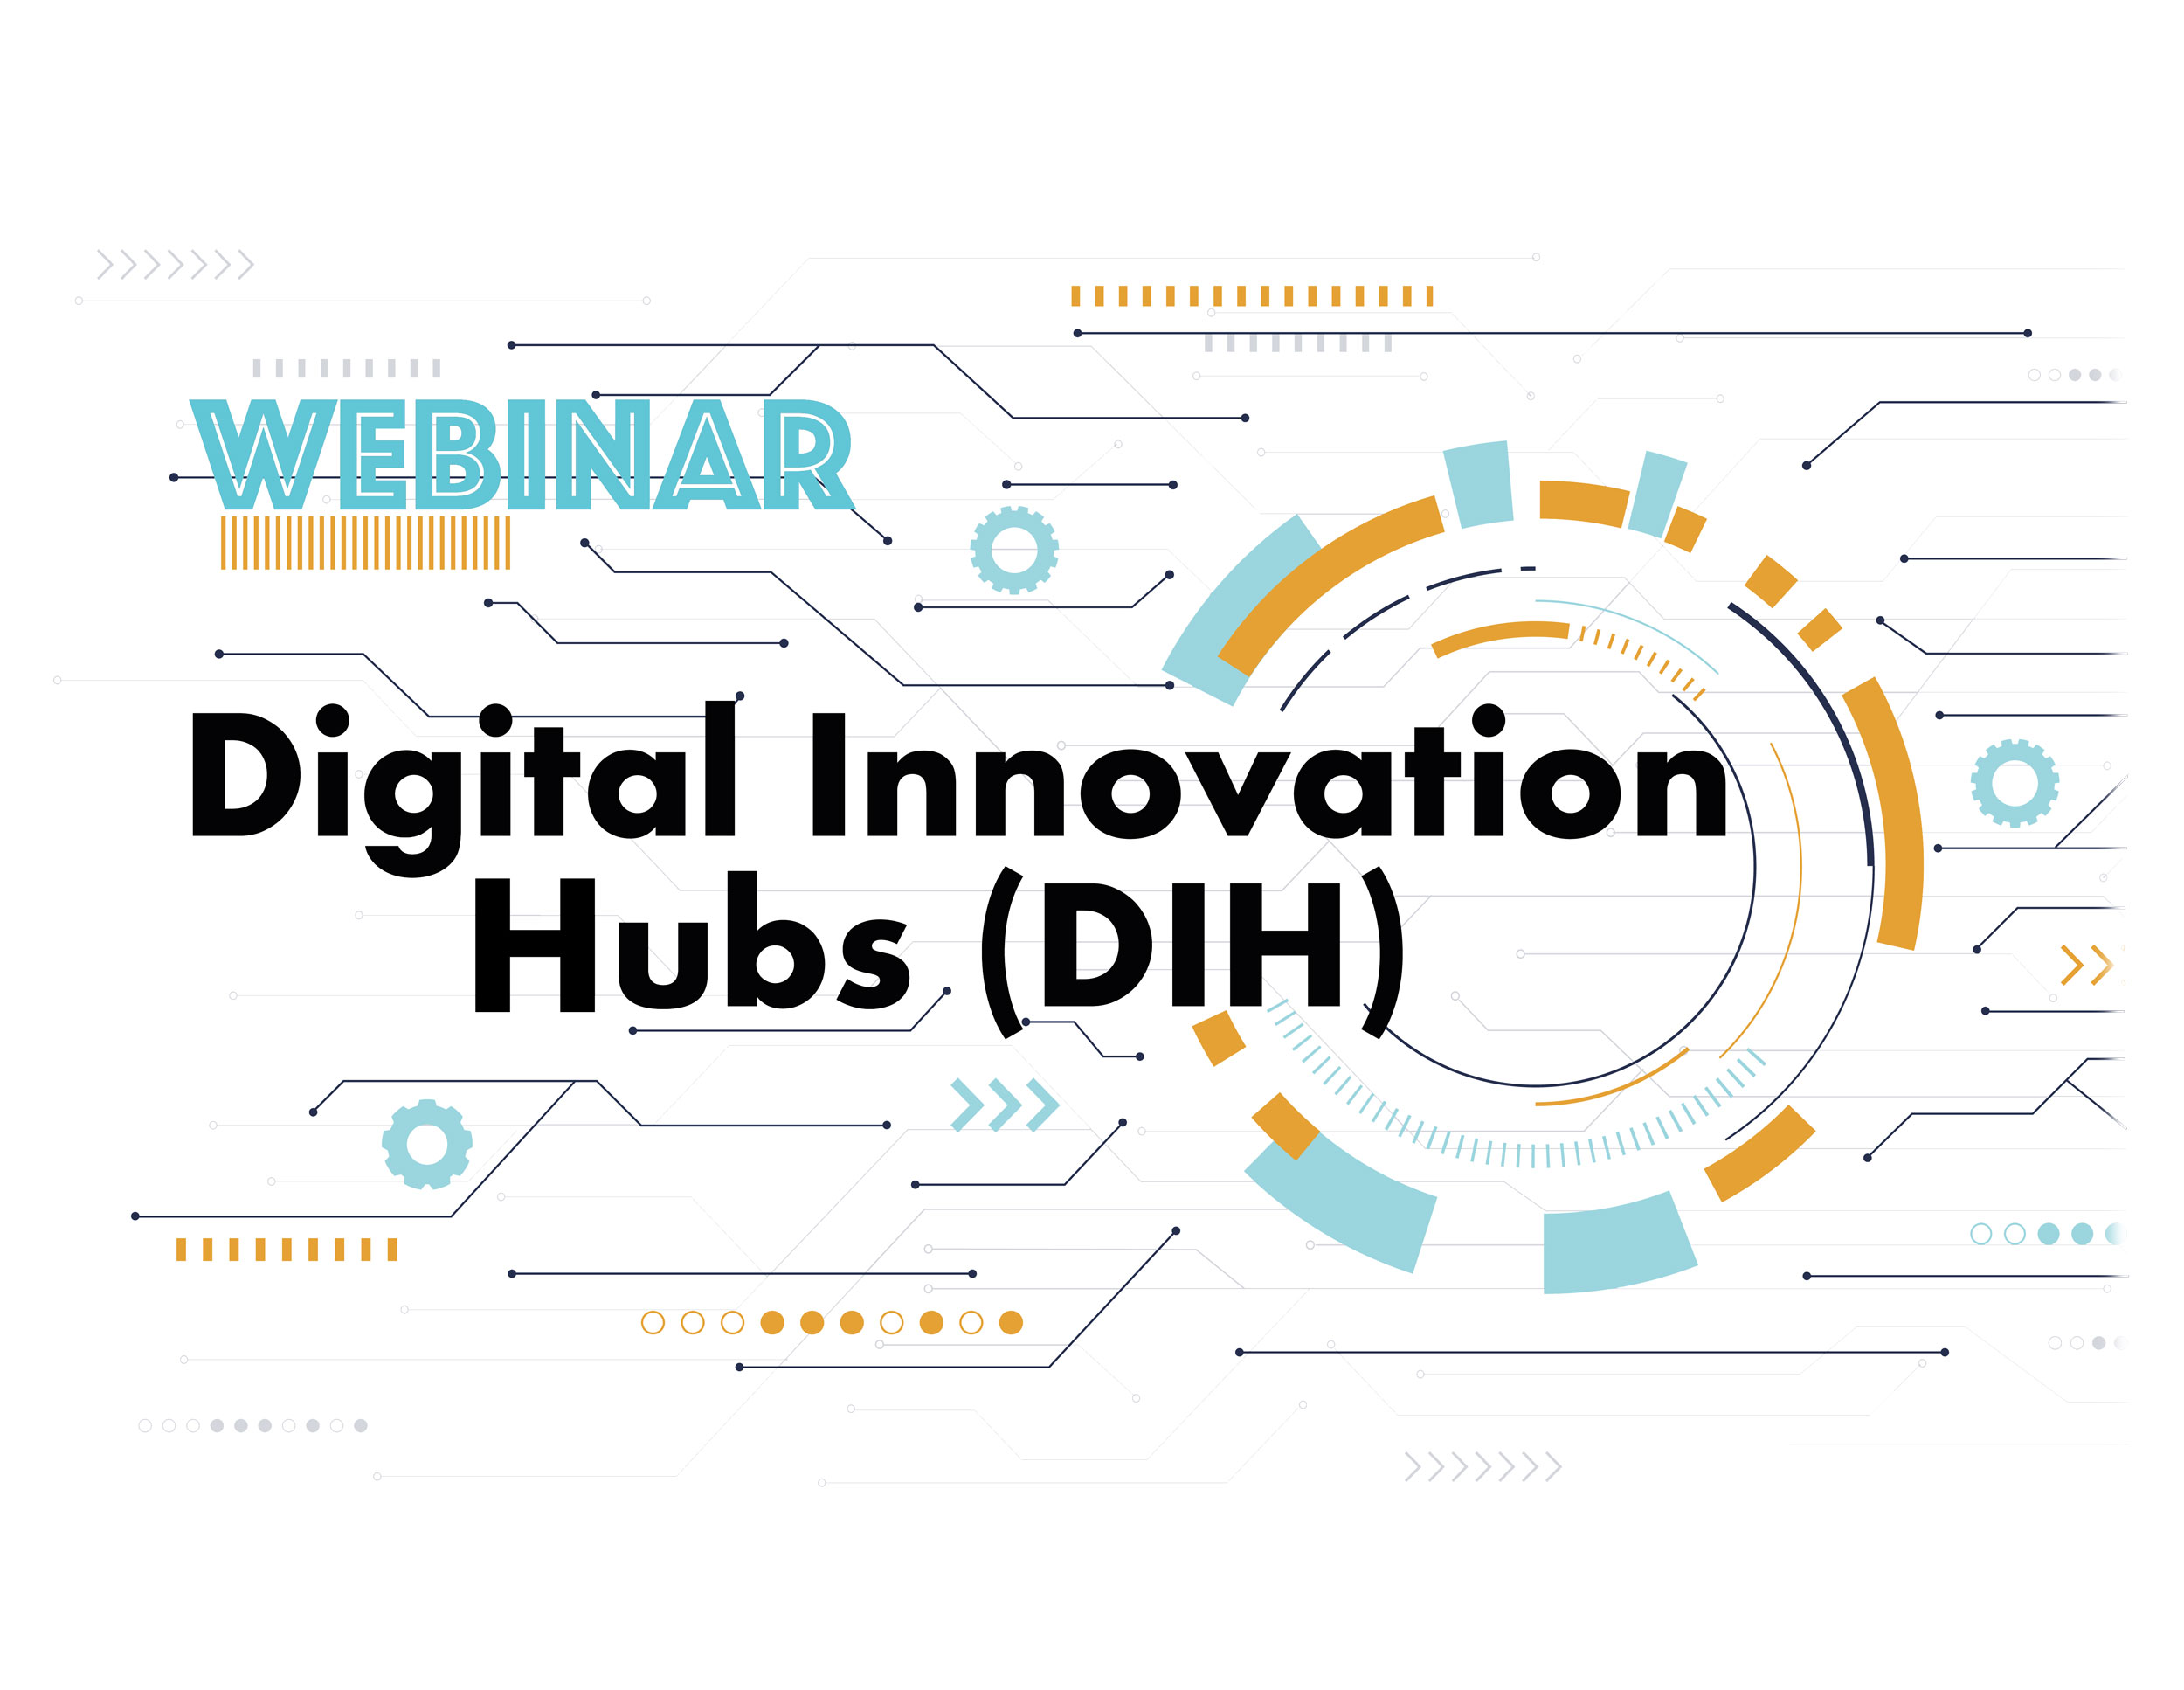 Webinar - Digital Innovation Hubs (DIH)